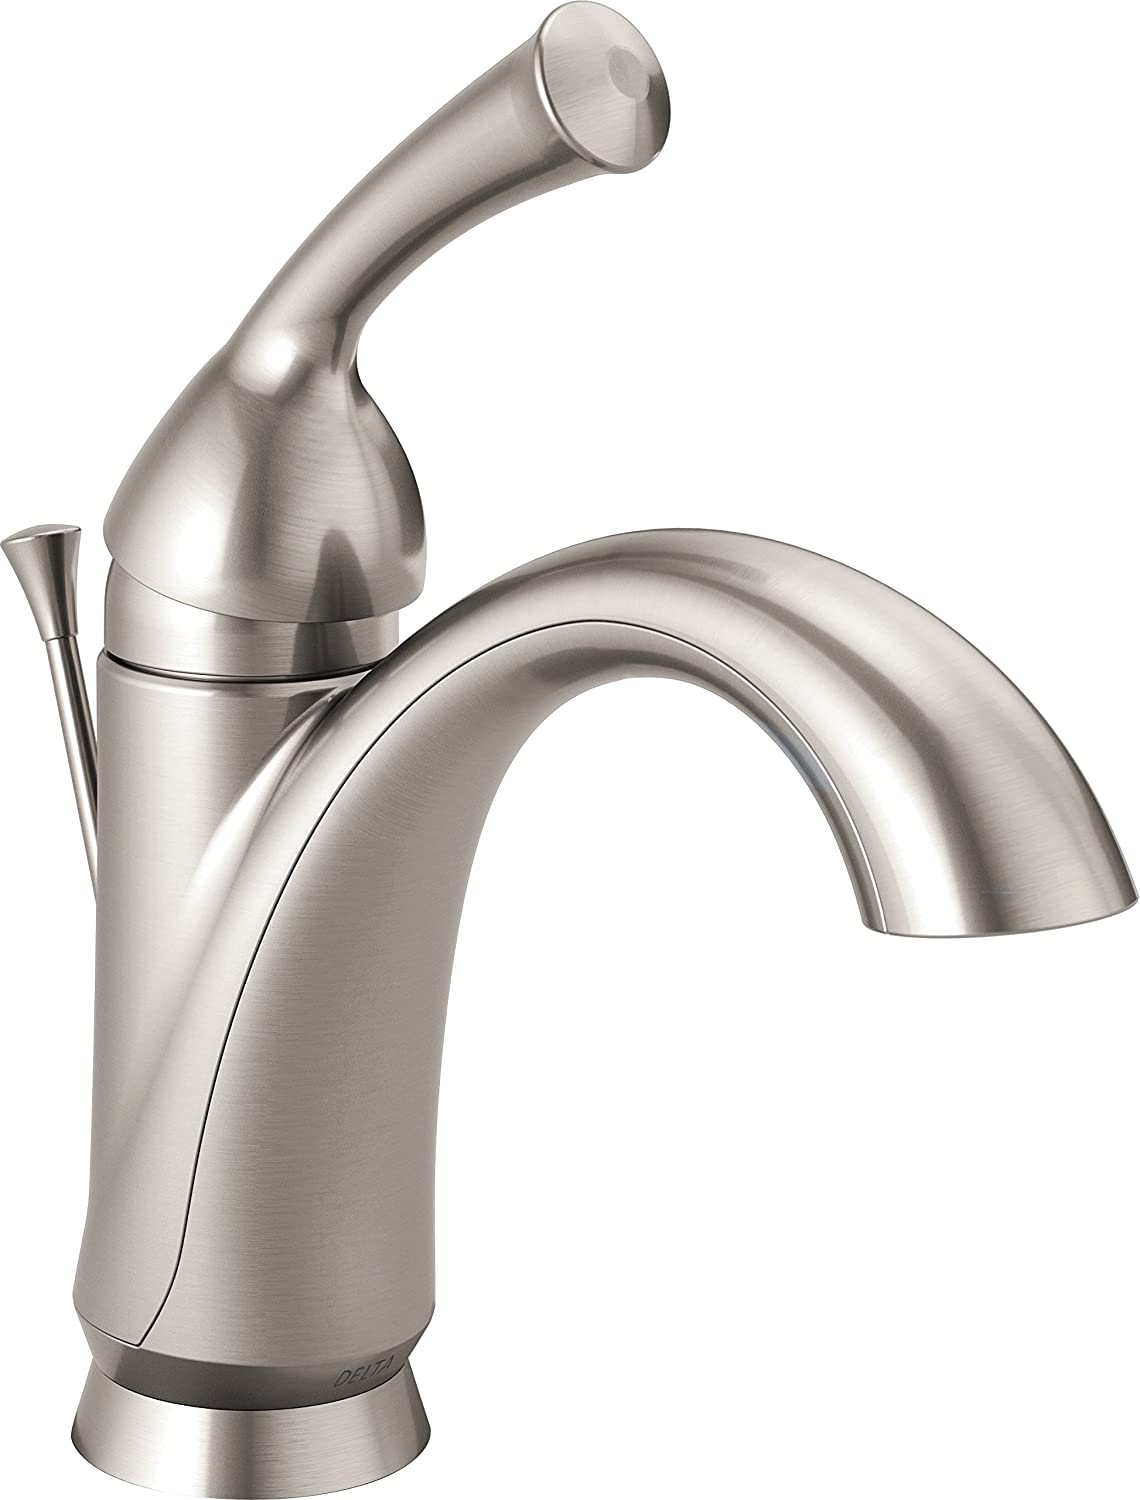 Delta Faucet Haywood Single-Handle Bathroom Faucet with Diamond Seal Technology and Drain Assembly, Stainless 15999-SS-DST